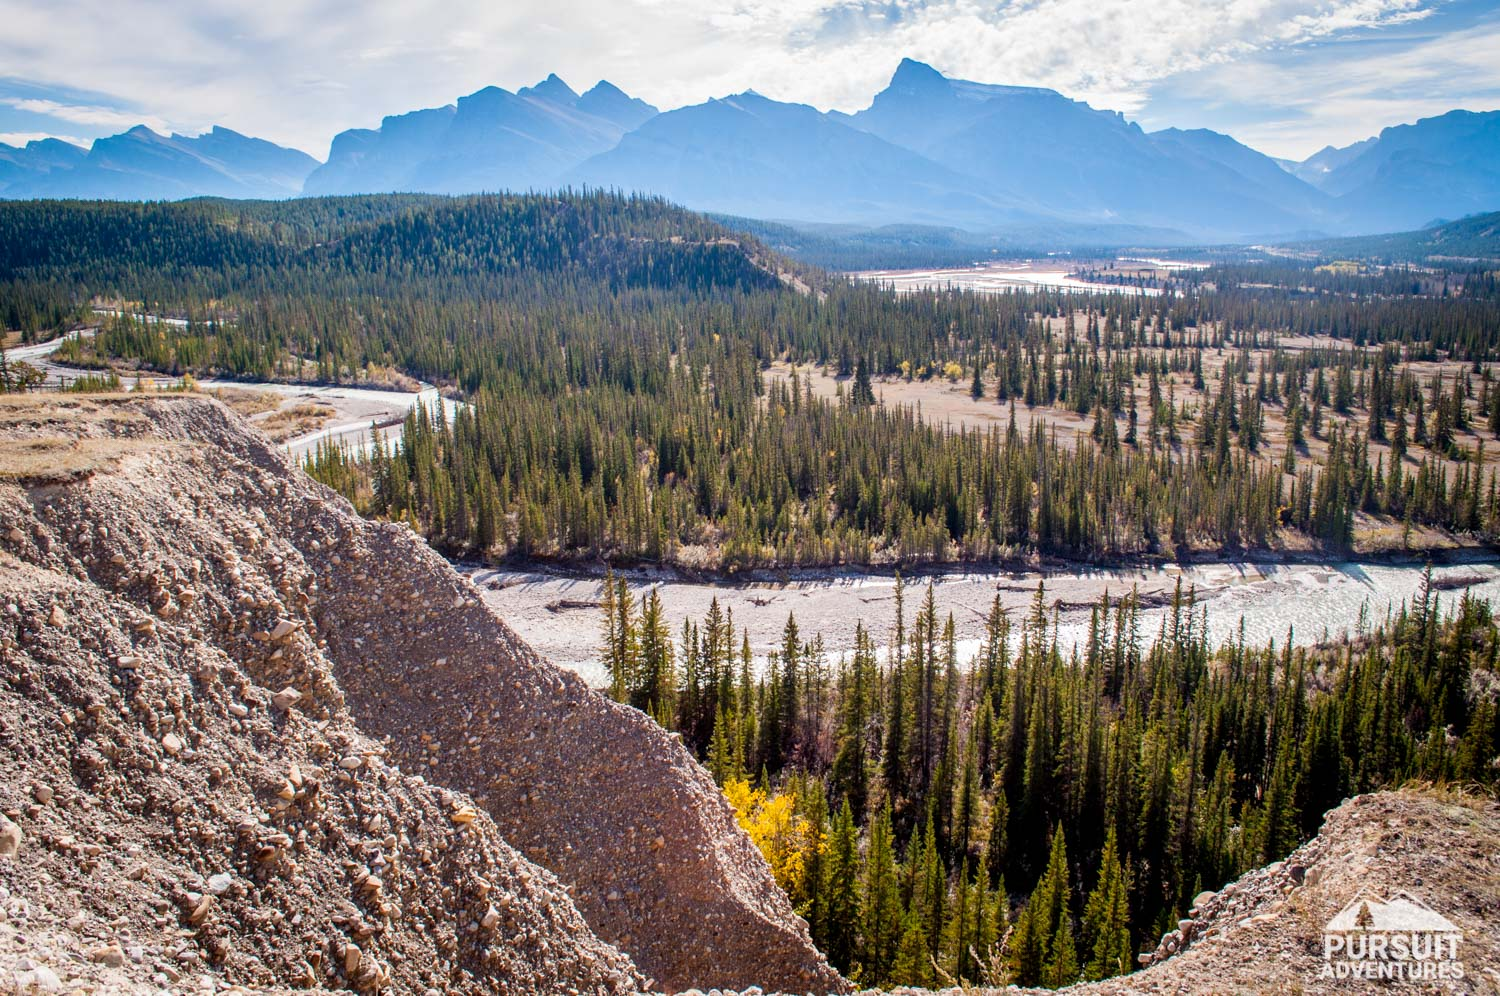 Kootenay Plains Ecological Reserve